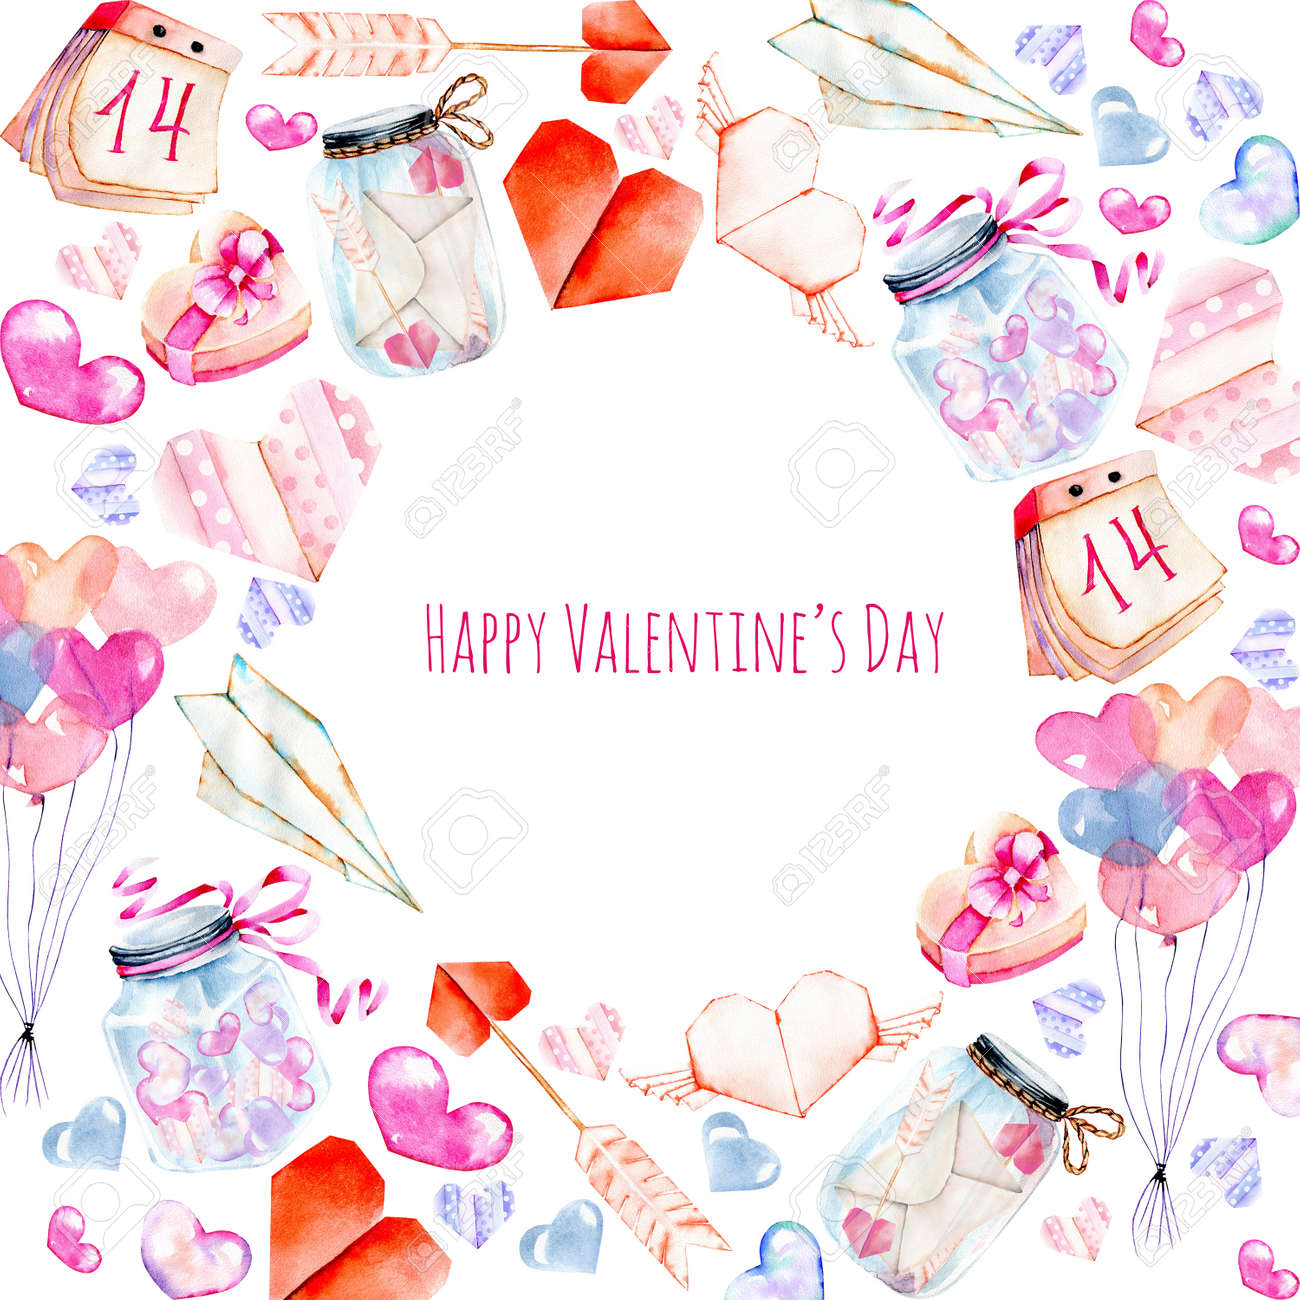 Watercolor Valentine S Day Elements Greeting Card Hearts Origami